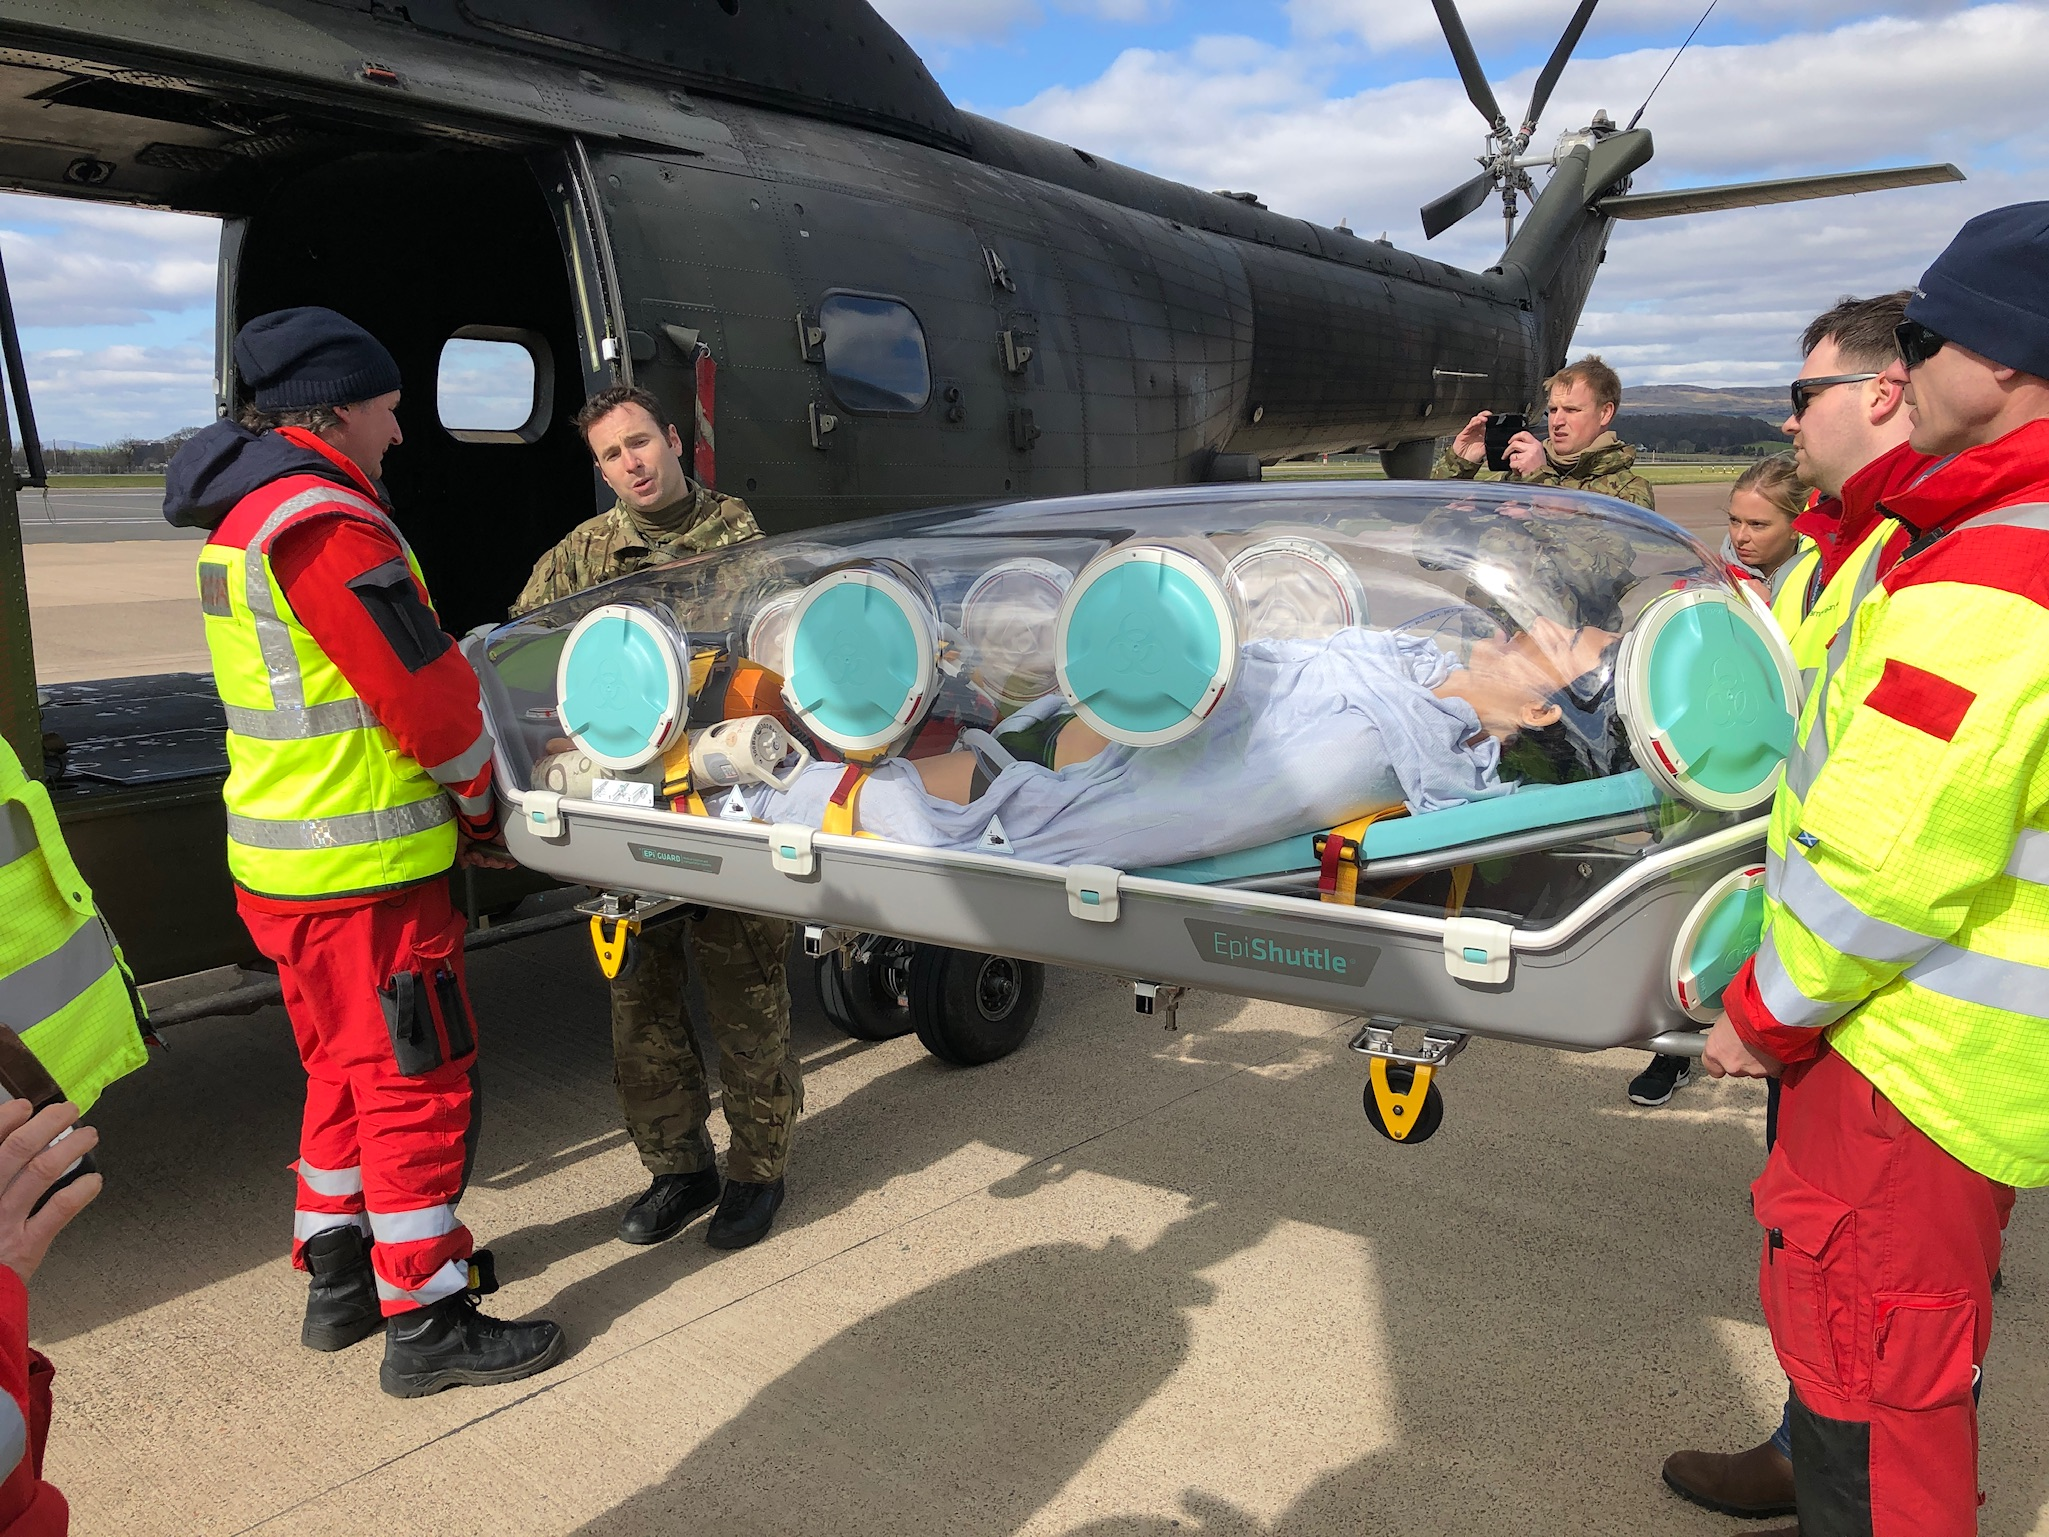 A Puma crewman supports the doctors and Paramedics of the Scottish Ambulance Service during the loading of the EpiShuttle onto the helicopter.